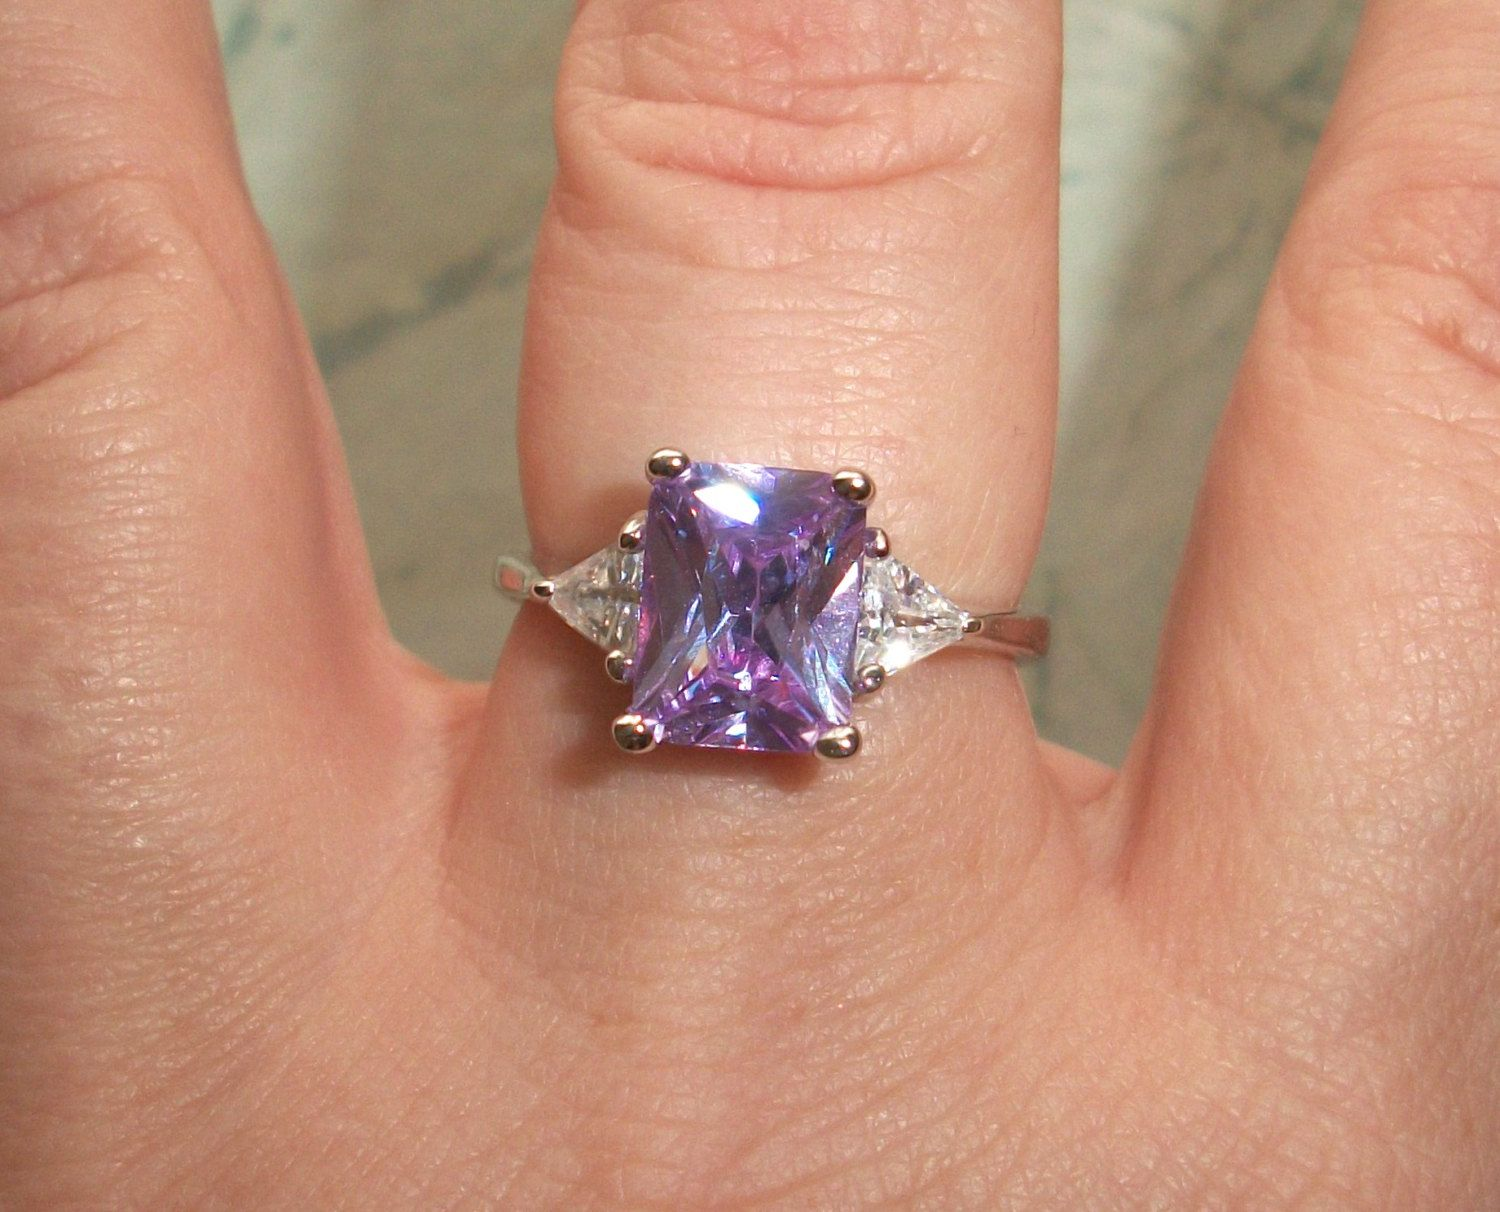 Vintage Preowned Signed 925 Fas Sterling Silver Cocktail Ring,amethyst,purple  Pink,size 675,note Scrap,4g,designer,rectangle,triangle